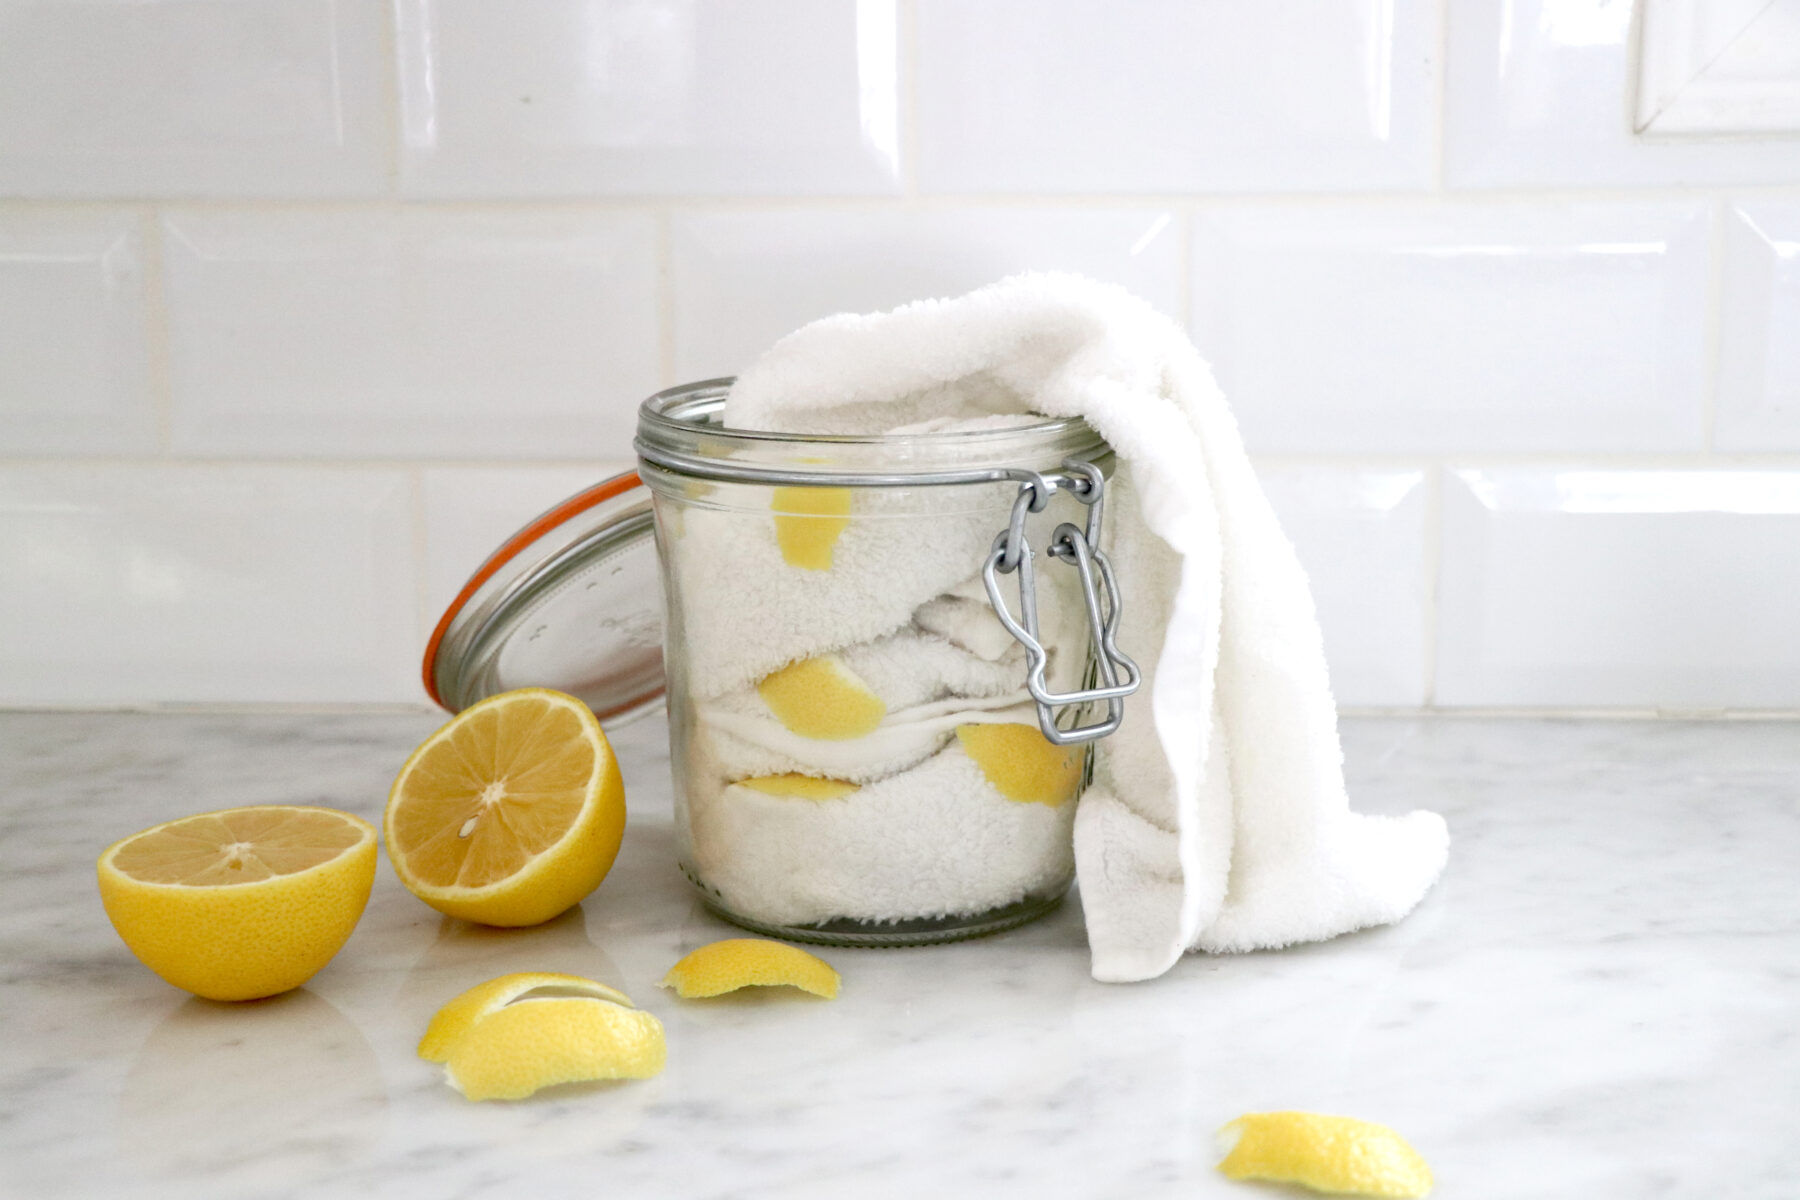 Glass jar filled with white towels and lemon slices with lemon on the side.